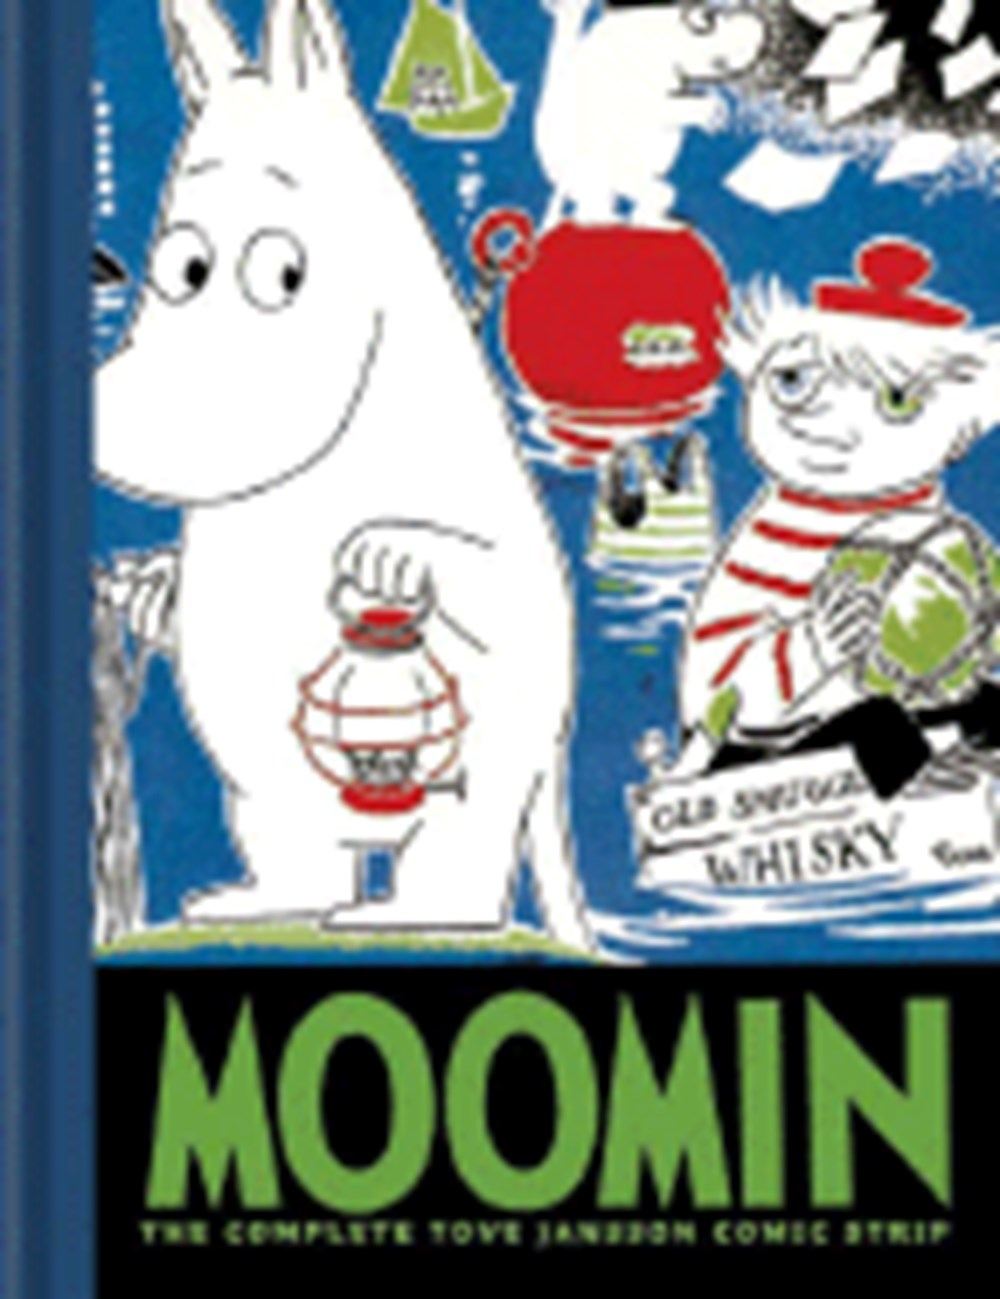 Moomin Book Three The Complete Tove Jansson Comic Strip